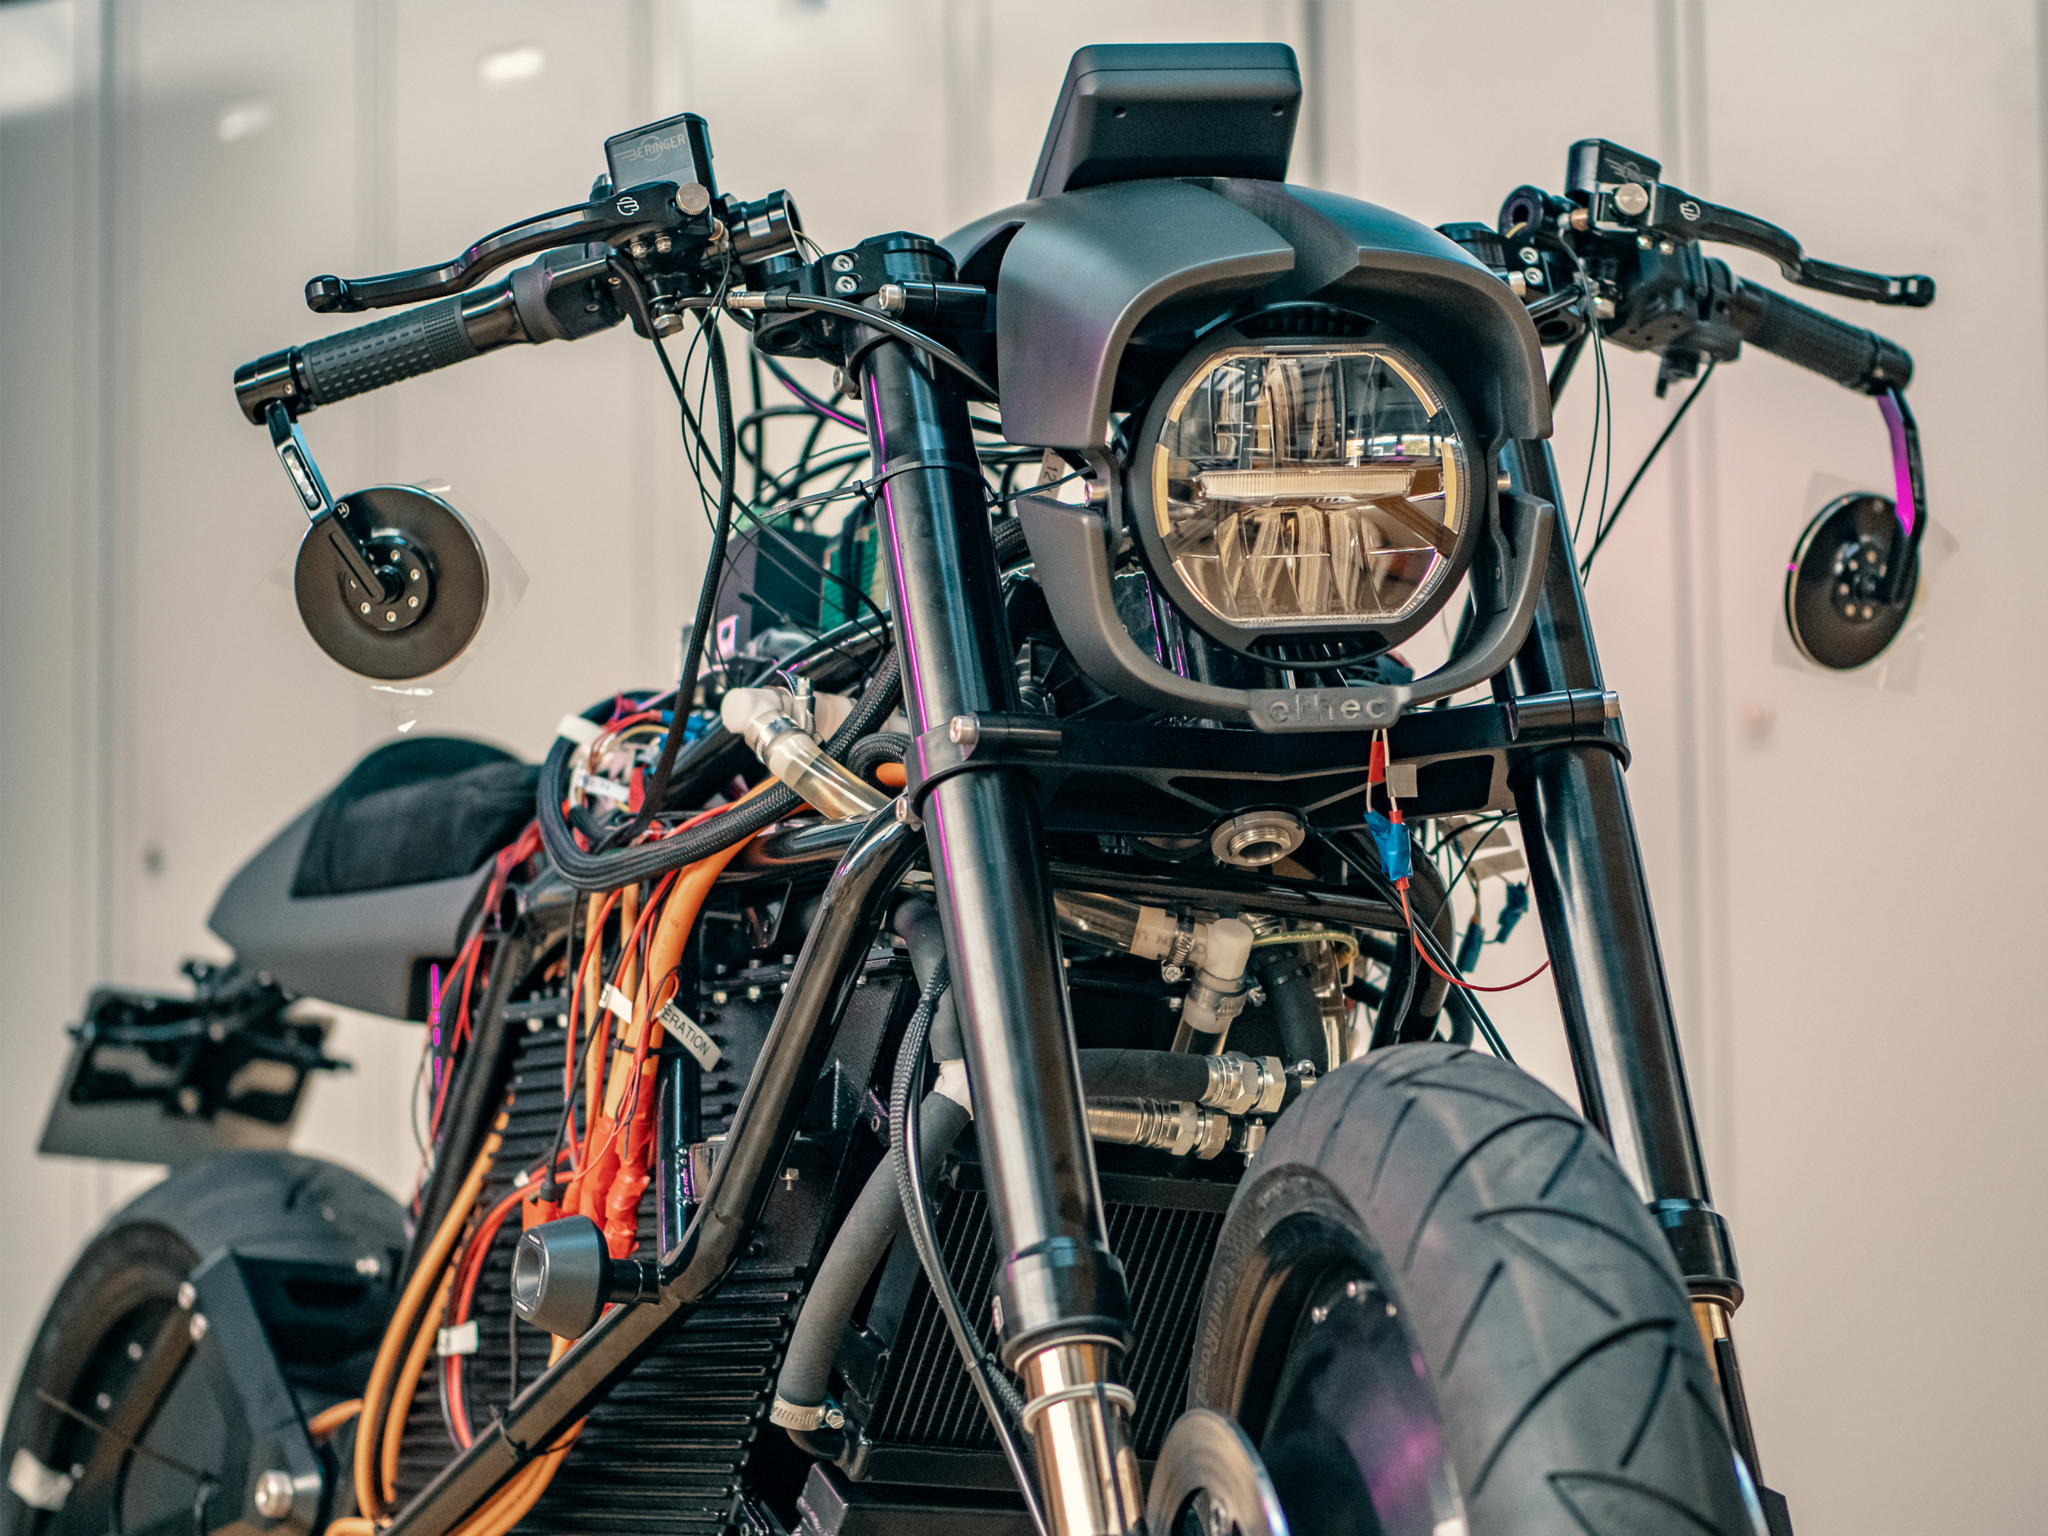 Under the hood of the motorcycle. Photo via ETH Zurich.